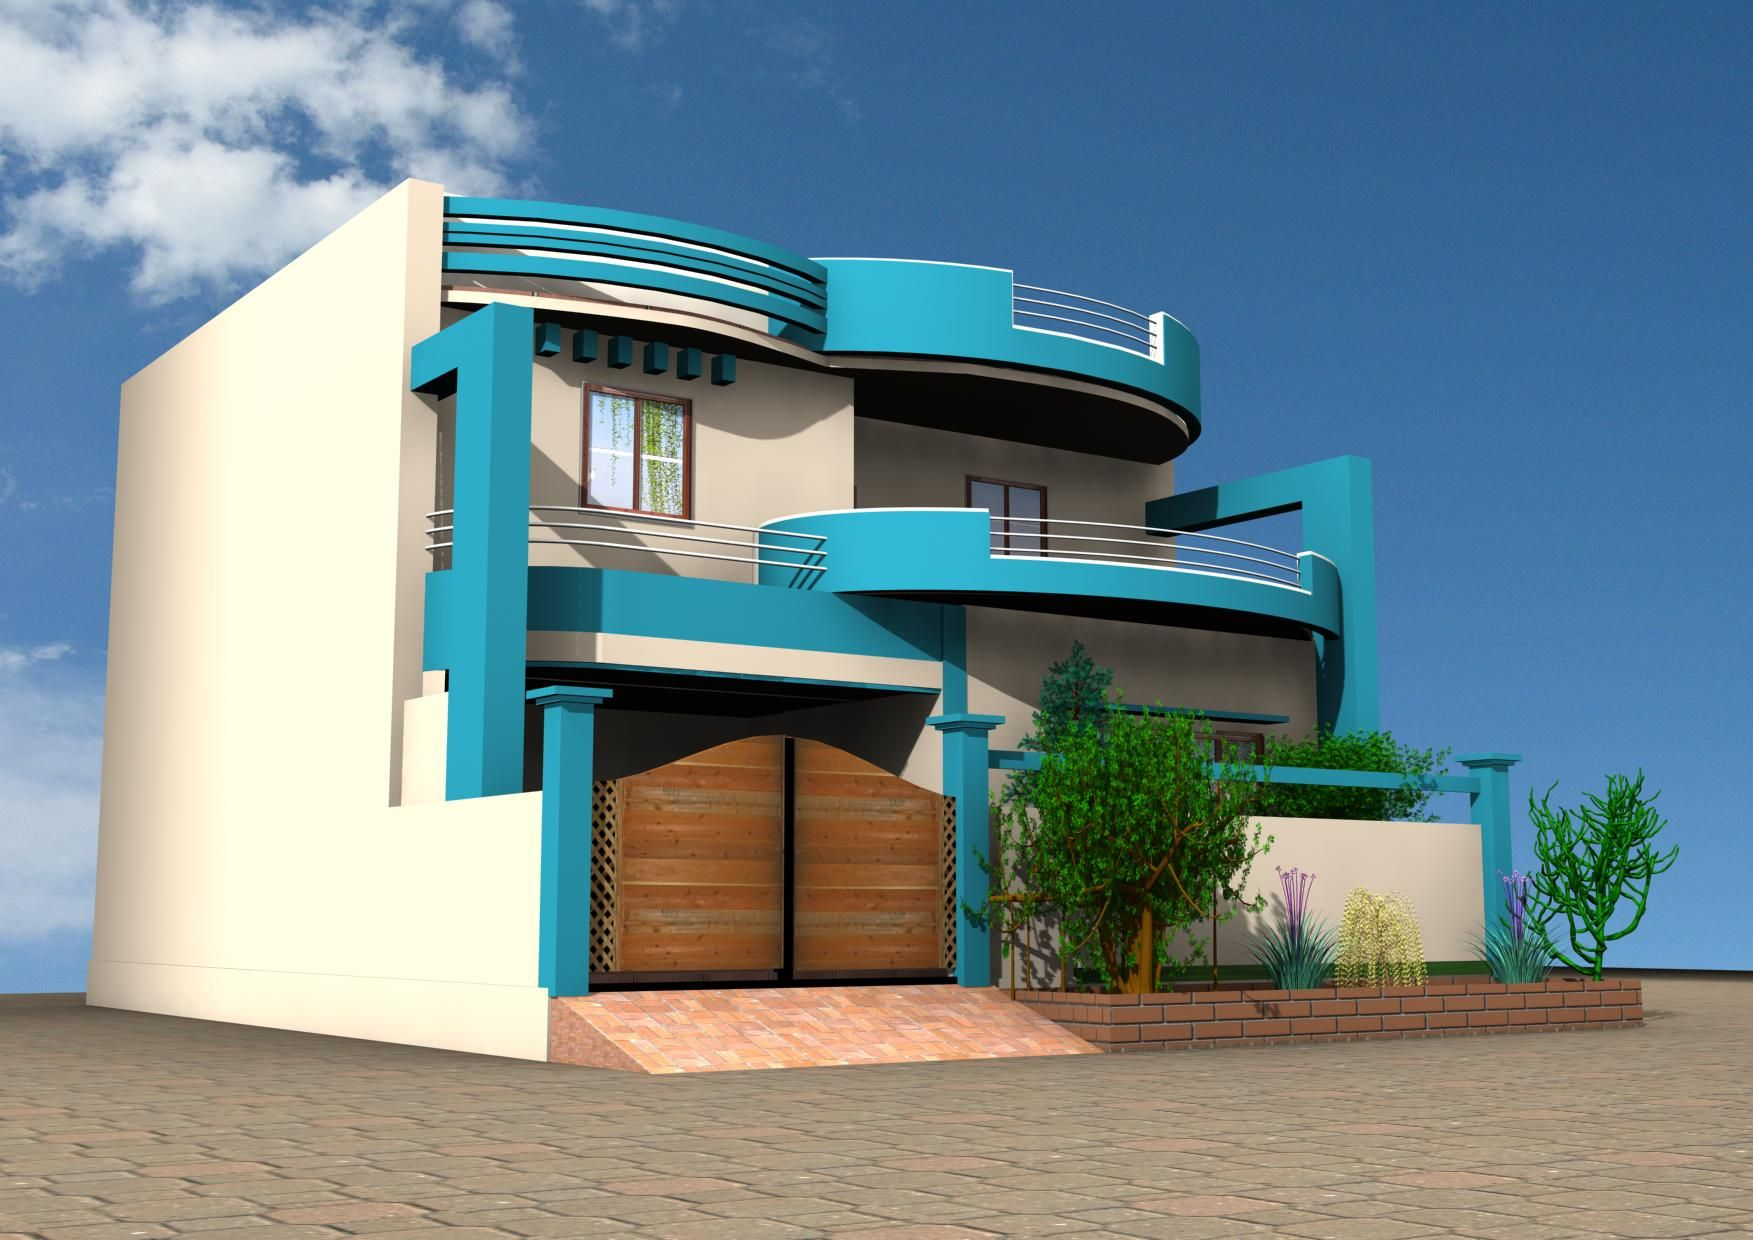 3d home design images hd 1080p 3d home architect